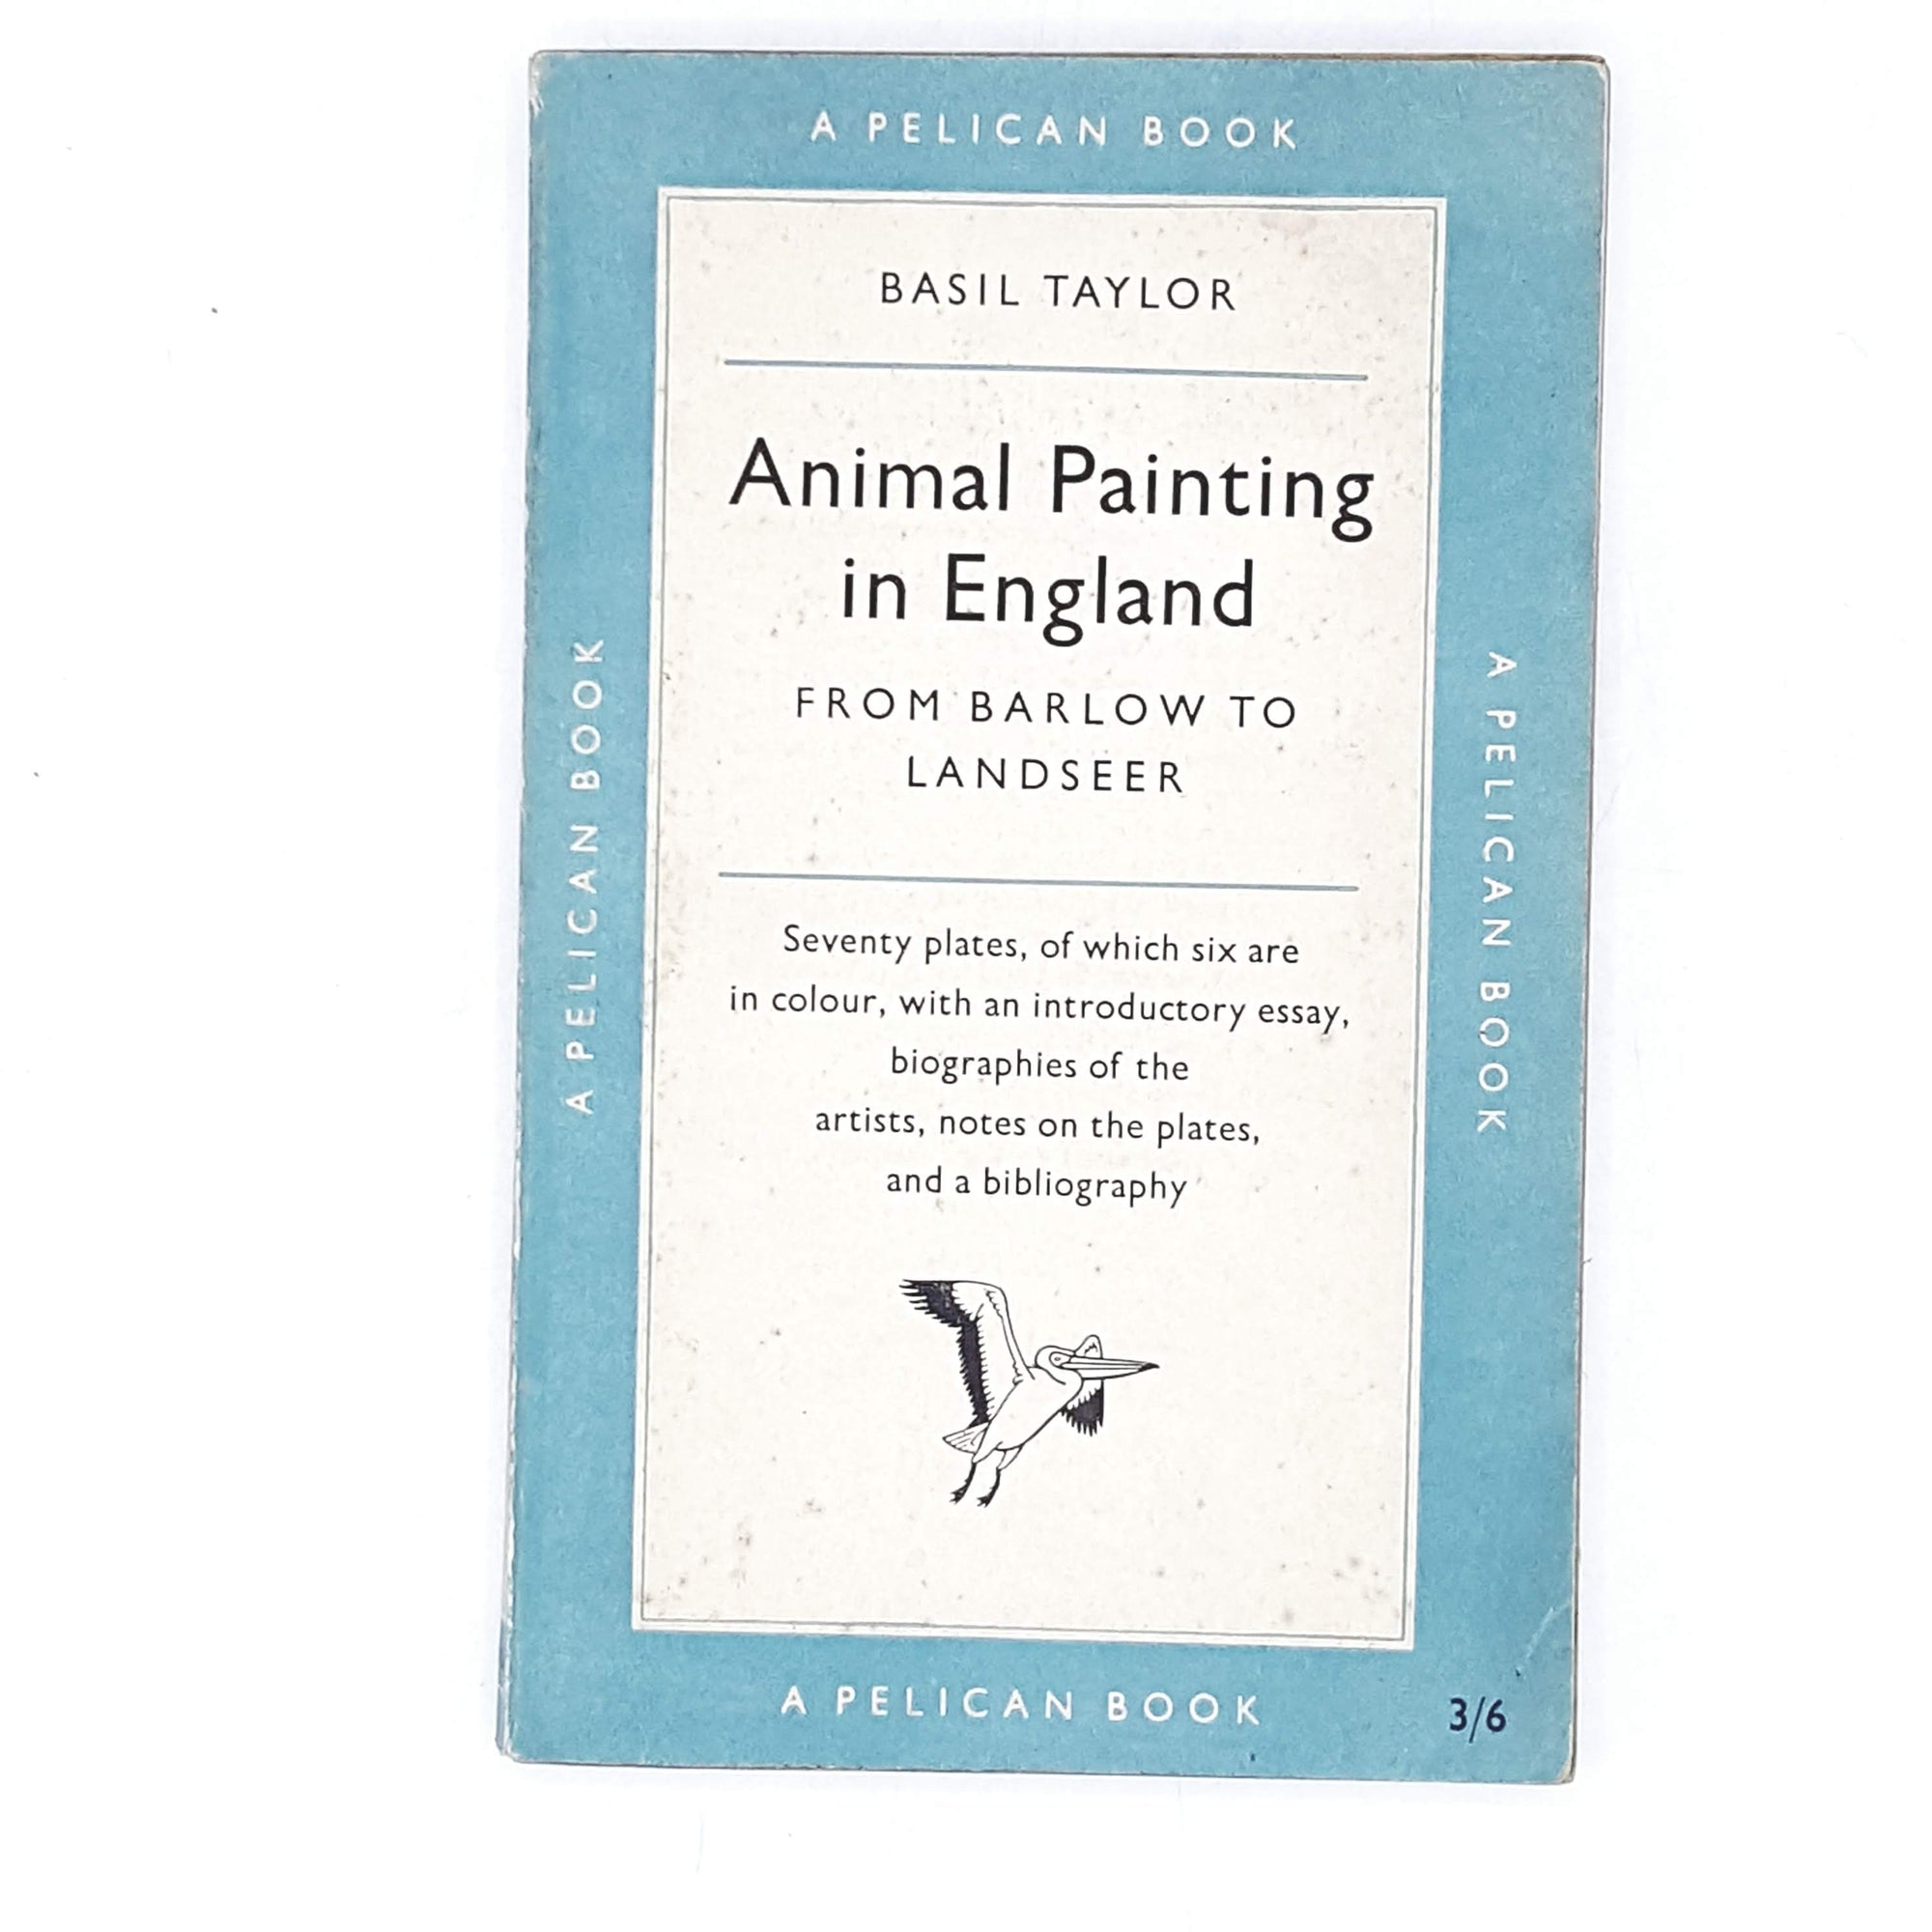 Vintage Pelican Animal Painting in England by Basil Taylor 1955